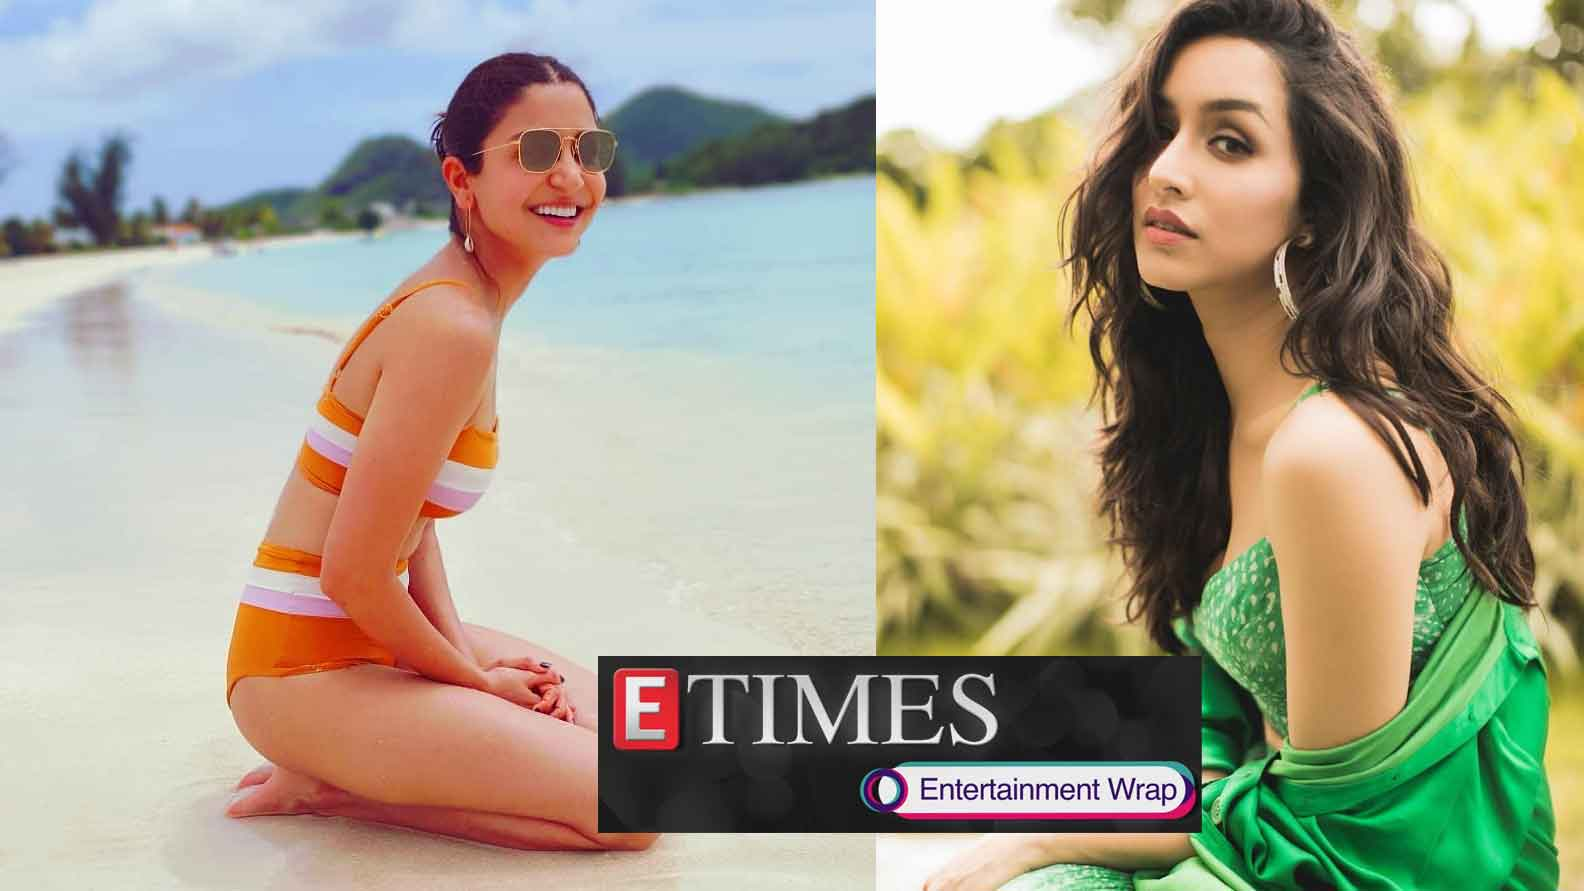 anushka-sharma-shares-sun-kissed-beach-picture-and-virat-kohli-cant-stop-gushing-over-it-shraddha-kapoor-stuns-in-this-green-lehenga-and-more